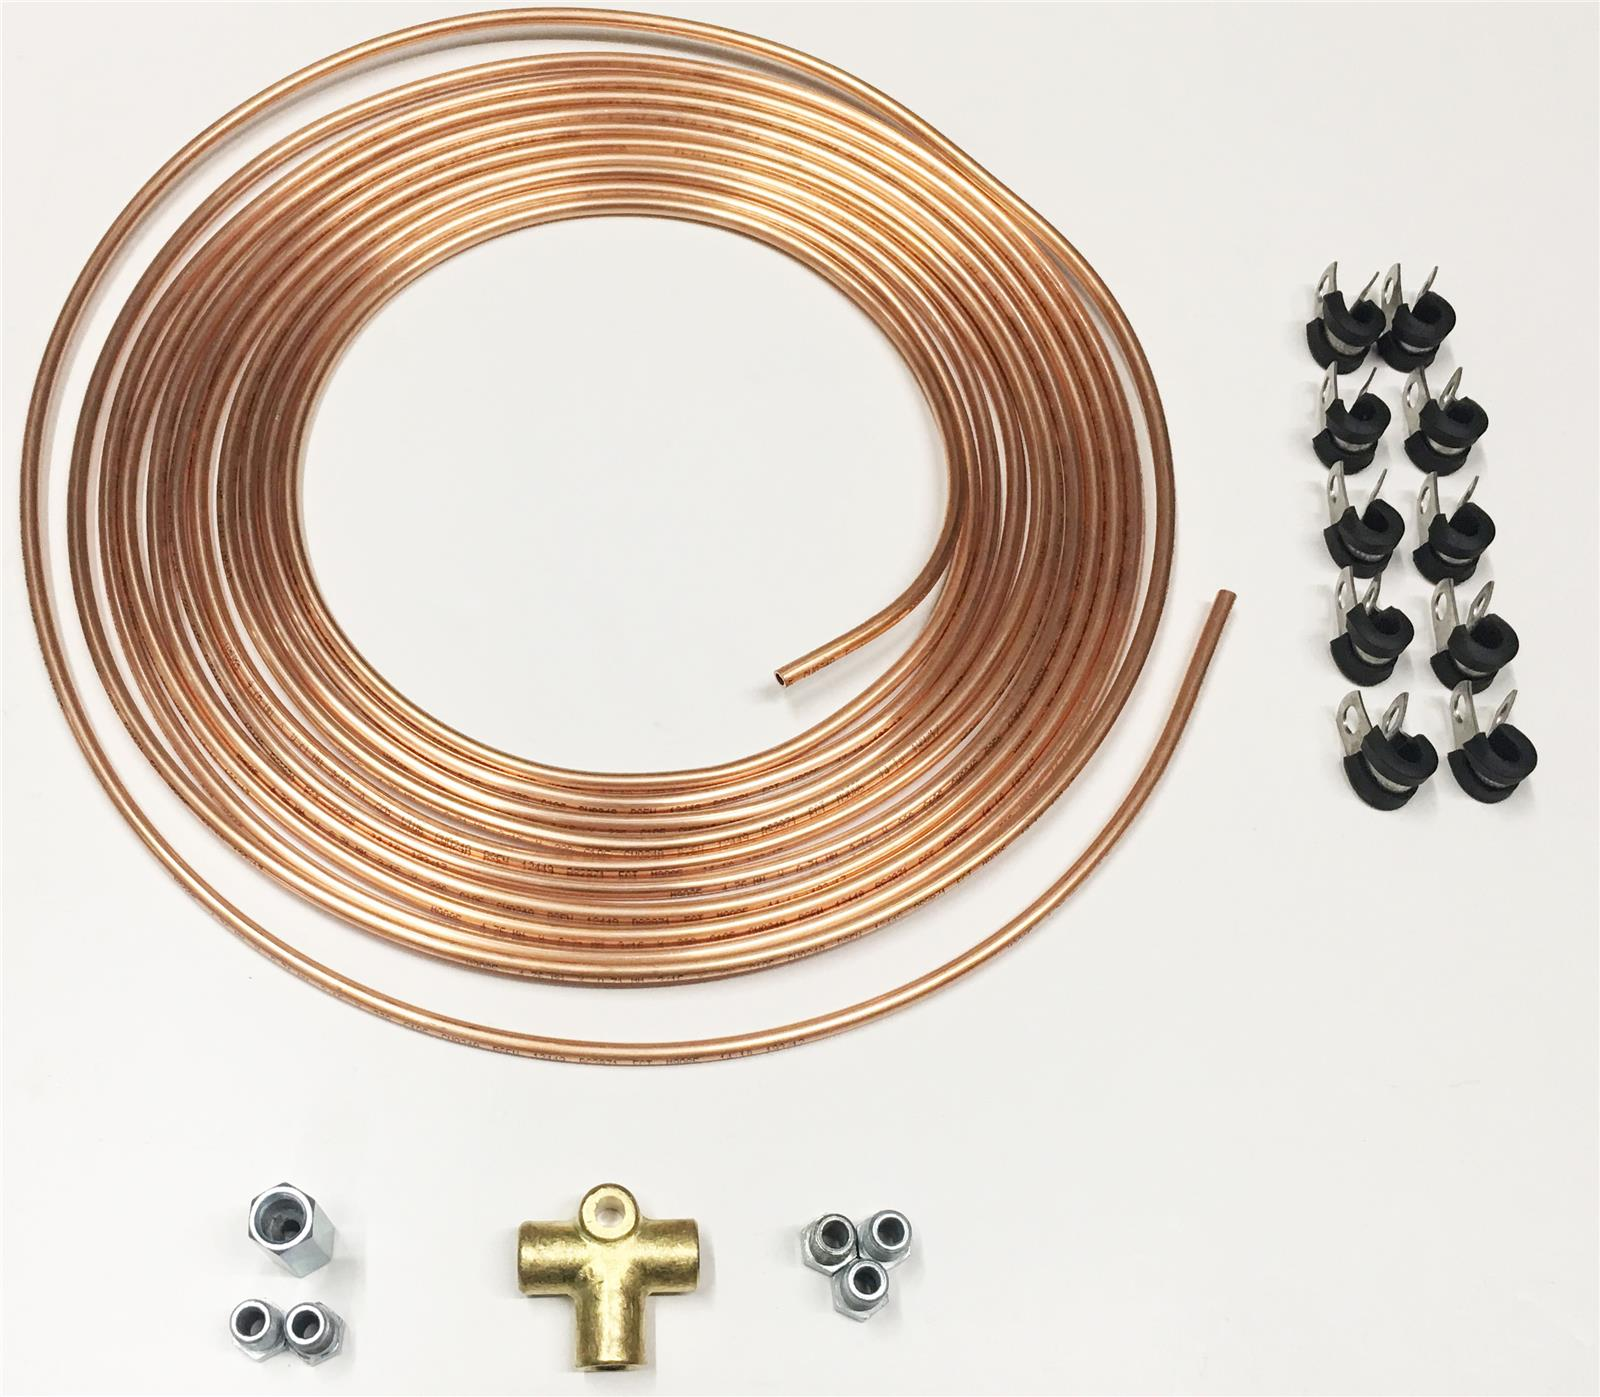 Variety Pack of 35 pieces 3//16 Copper Nickel//Copper Brake Pipe Fittings